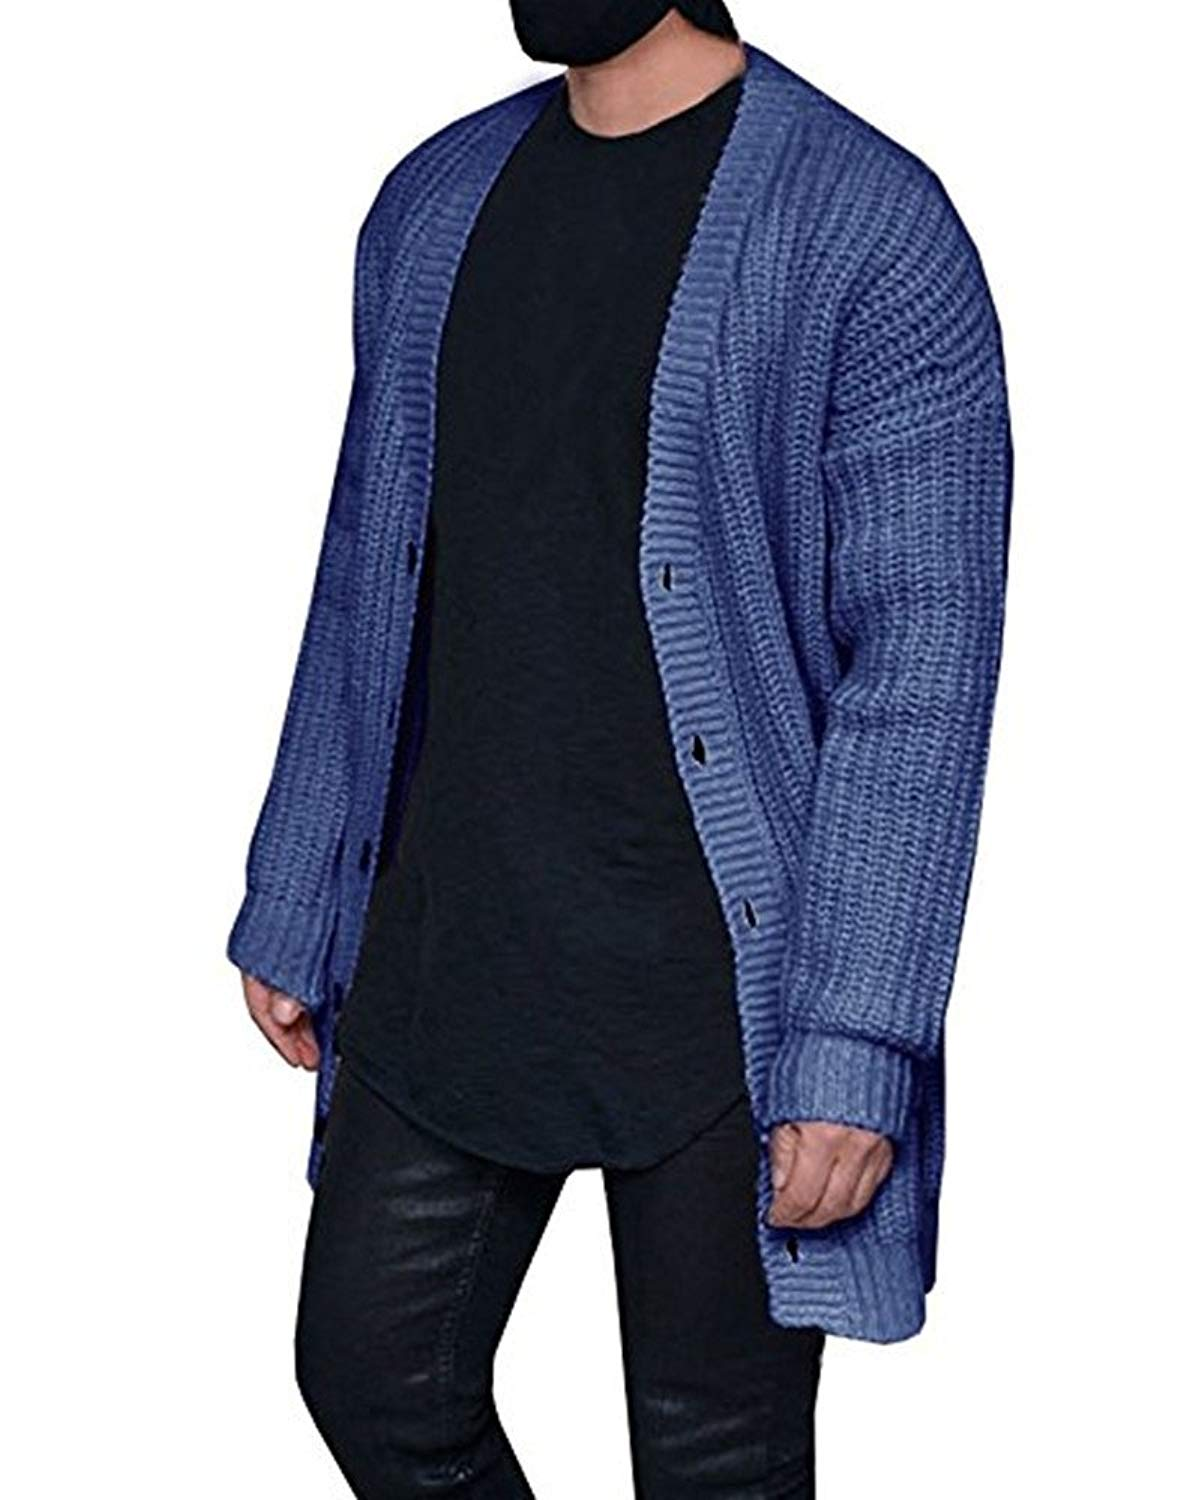 Cheap Mens Navy Cable Knit Sweater Find Mens Navy Cable Knit